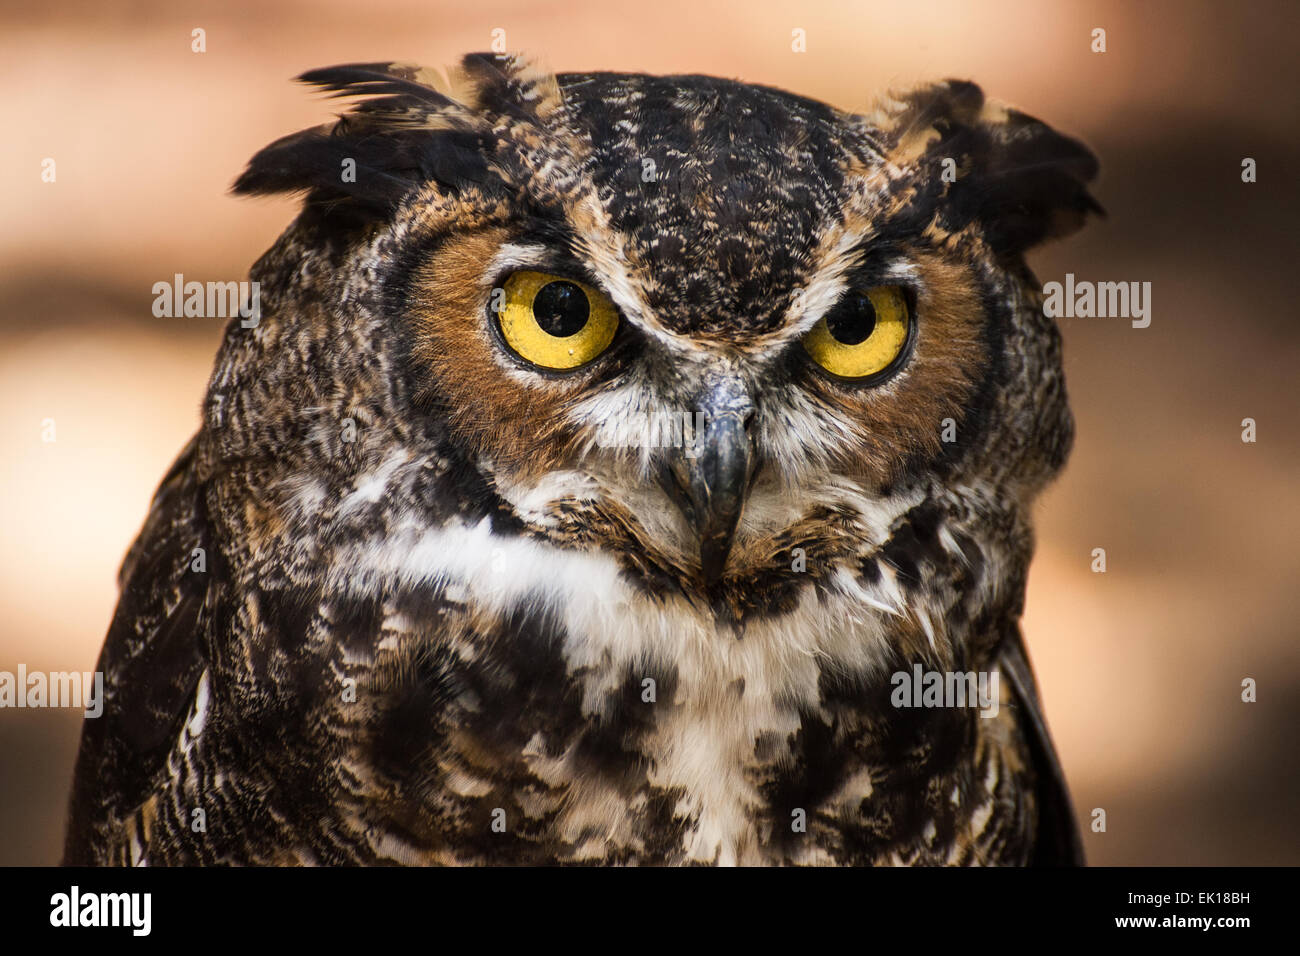 A portrait of a great horned owl. - Stock Image